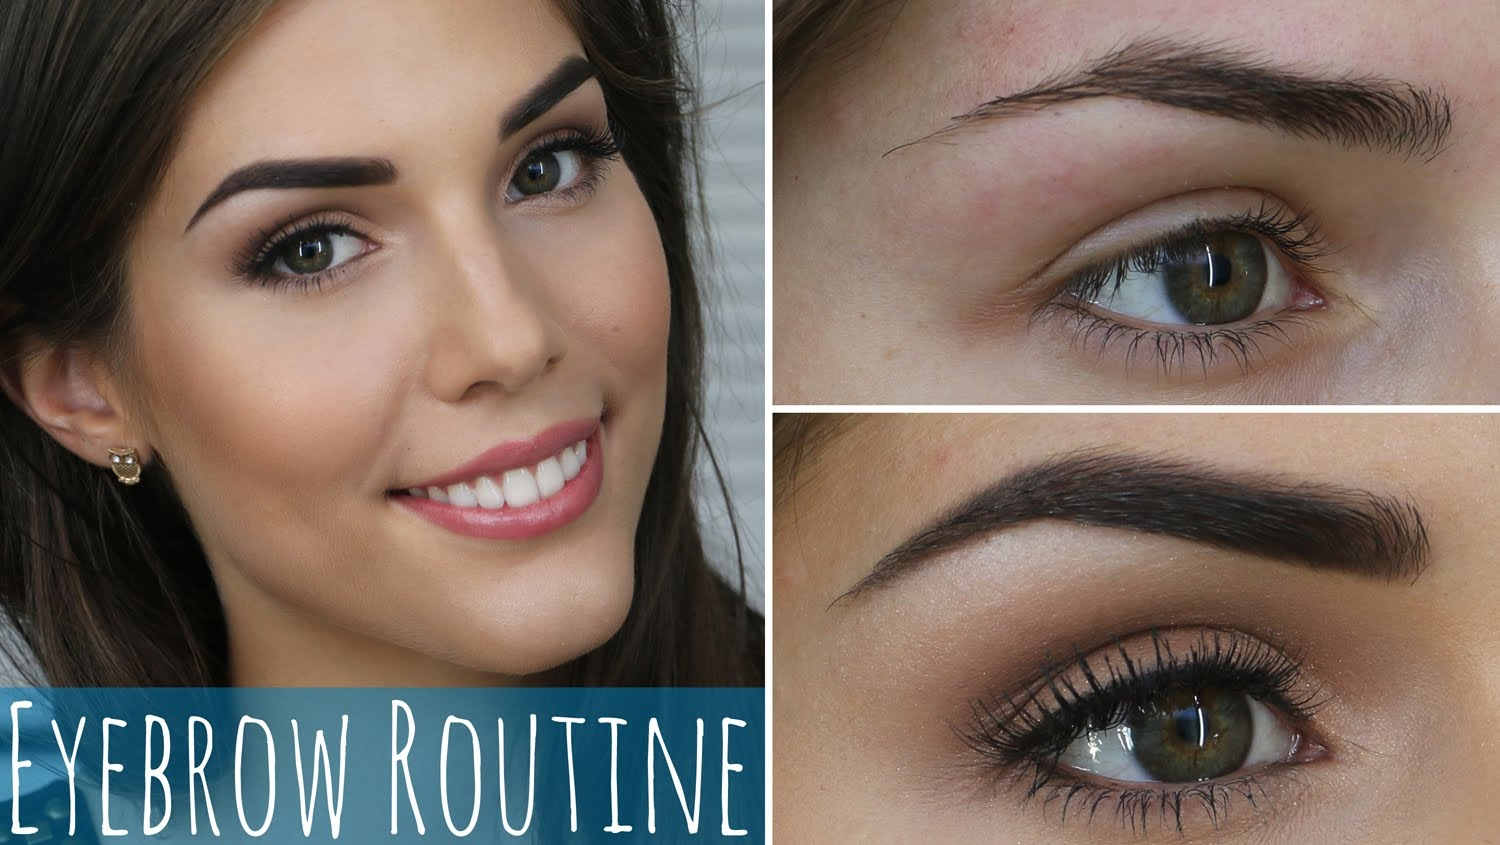 Eyebrows too dark!! Go a shade lighter or use a less intense touch to fill out your brows Using a brow pencil that's as dark as your natural brow will make it look too heavy or intense